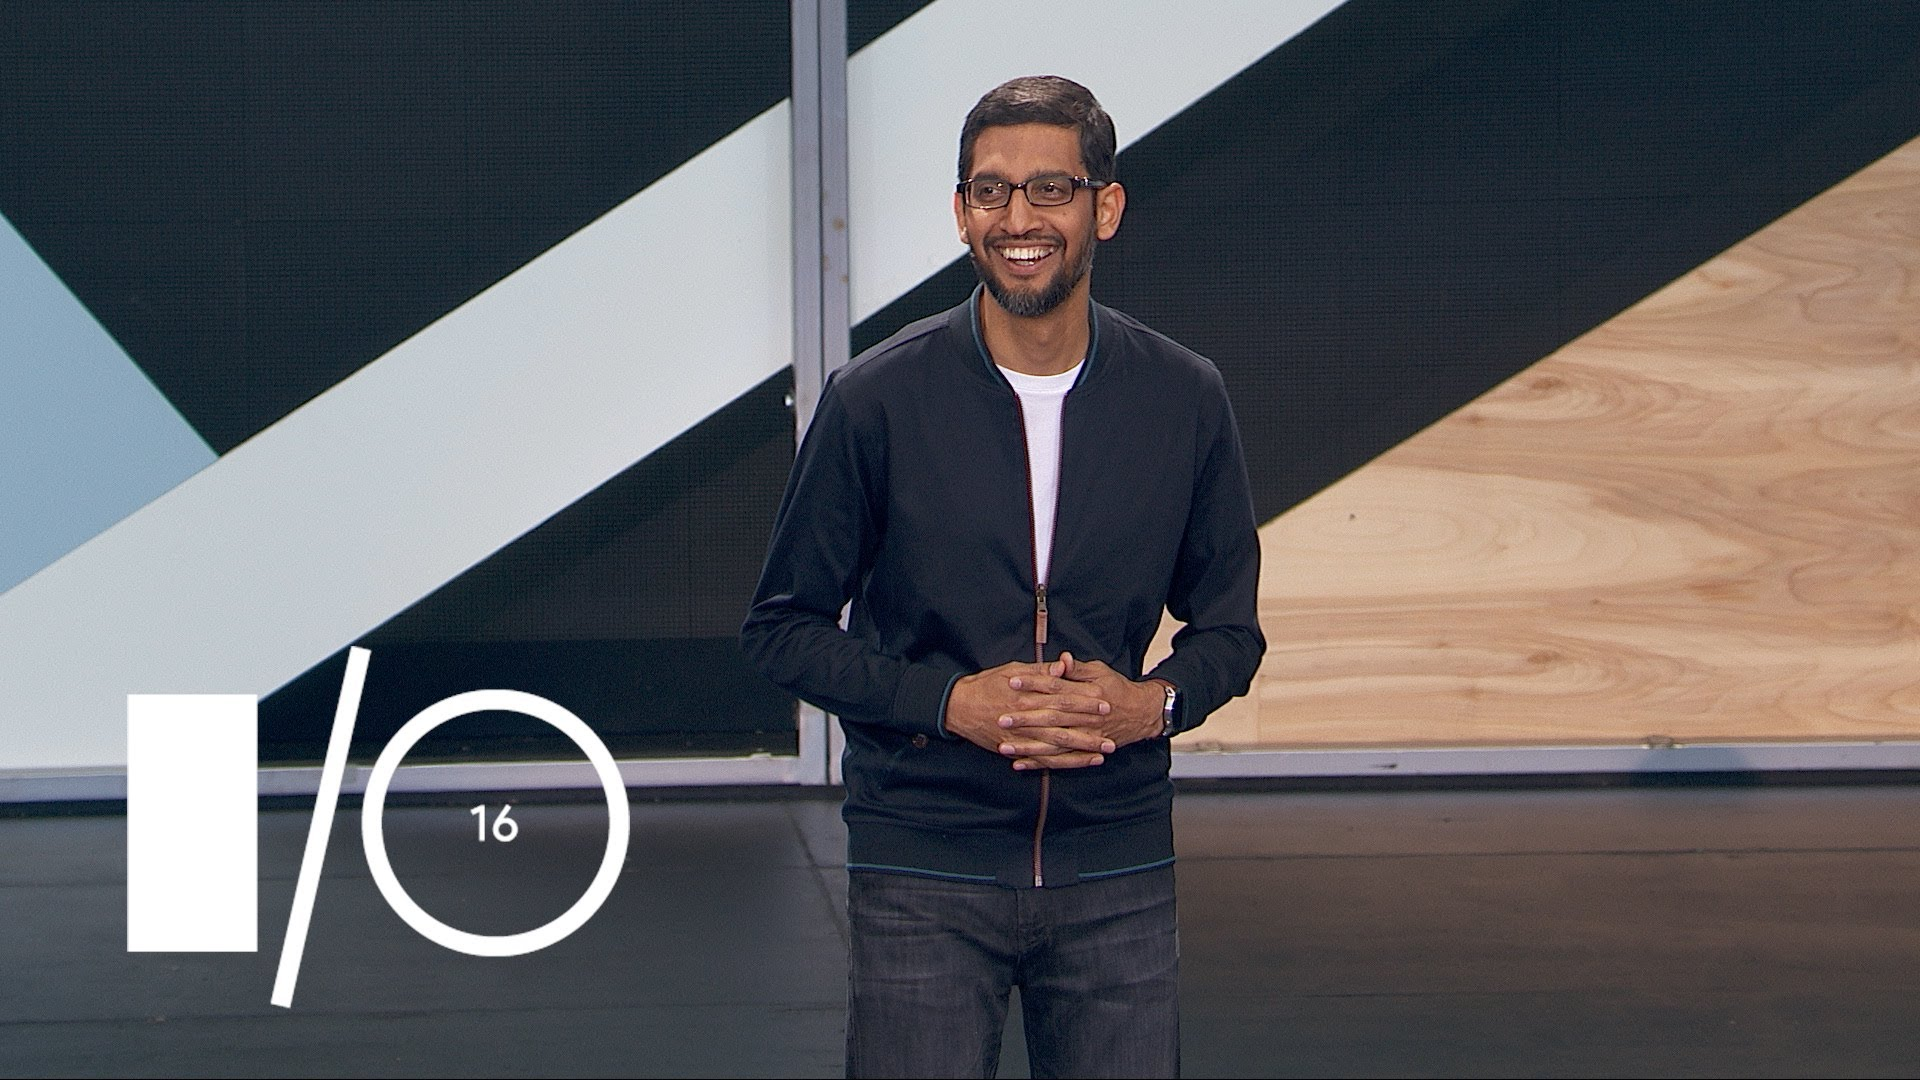 Google Annual Conference 2016